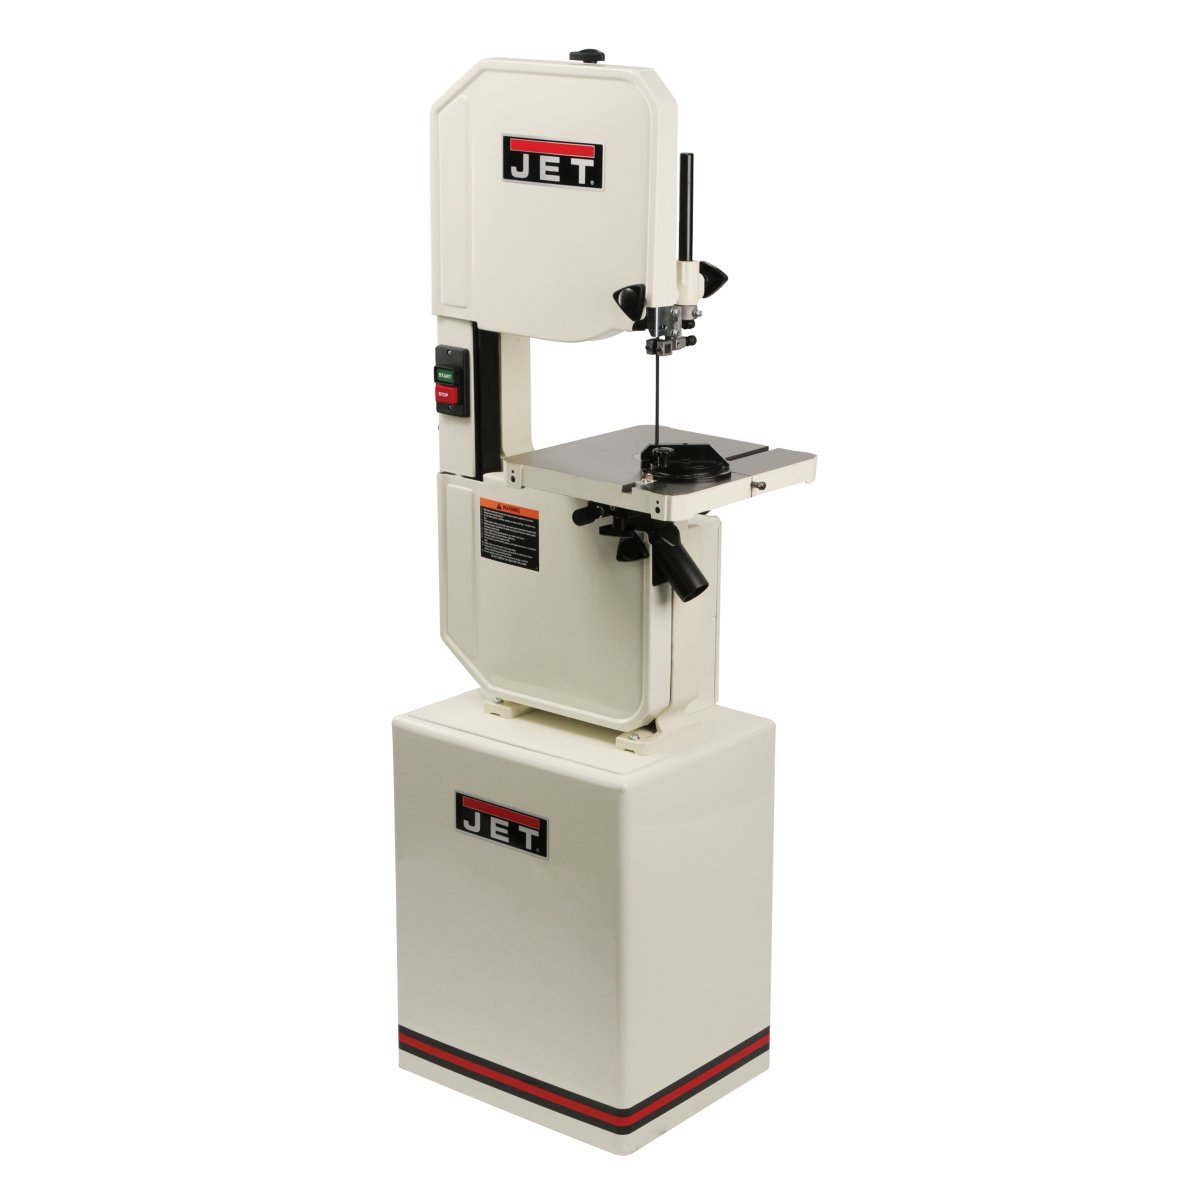 JET J-8201VS 14-inch Wood/ Metal Vertical Variable Speed Bandsaw 1PH